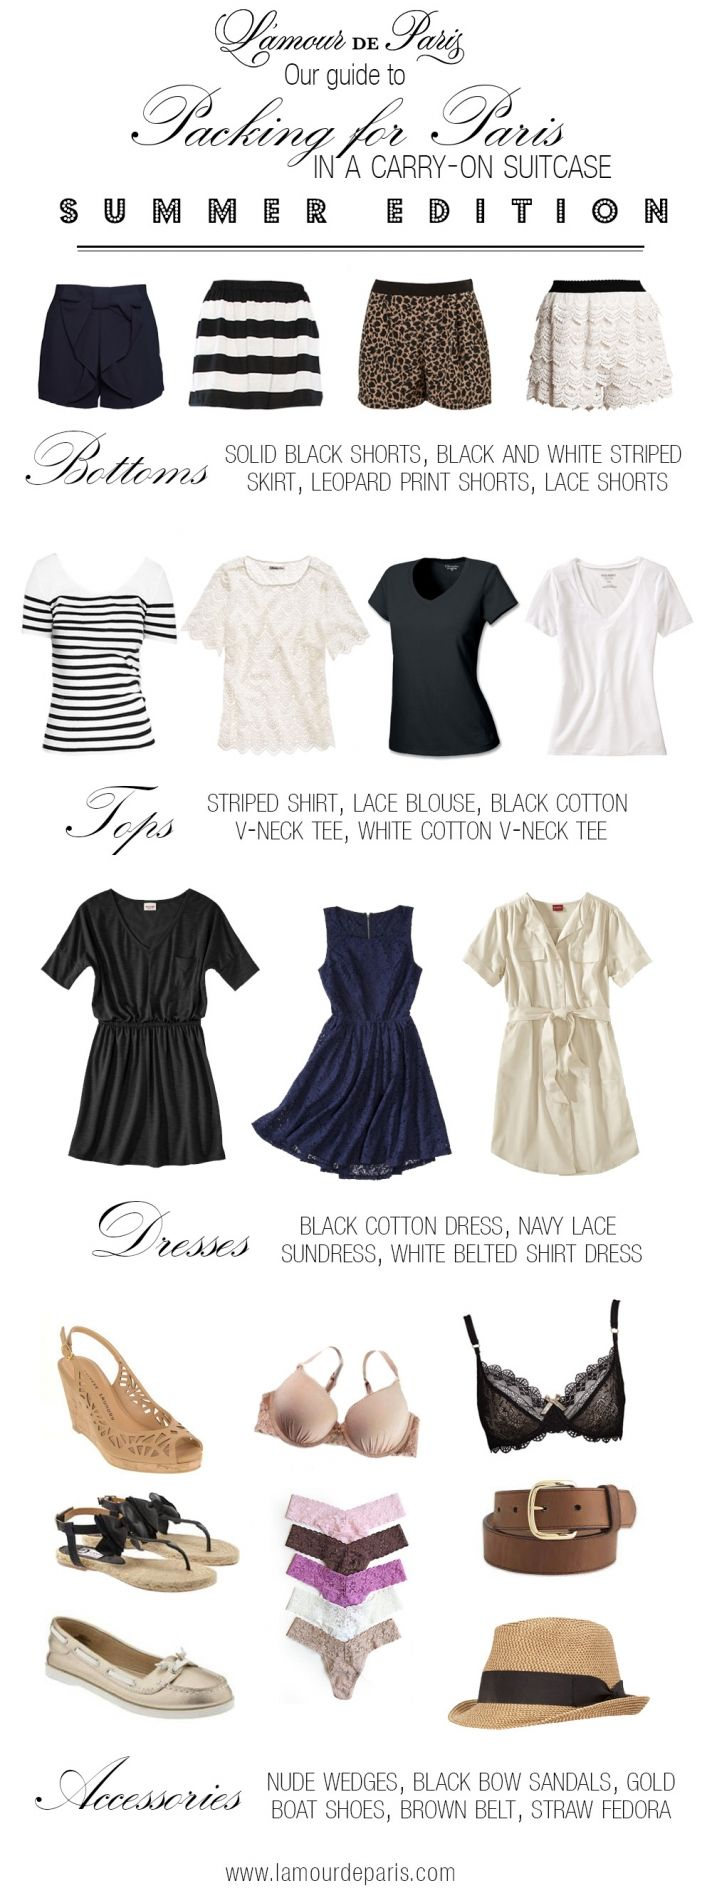 Very nice travel packing list and the blog shows how to mix and match the outfits. As you are packing for Paris, give me a chance at www.funcruisin.com to plan the Honeymoon of your dreams!